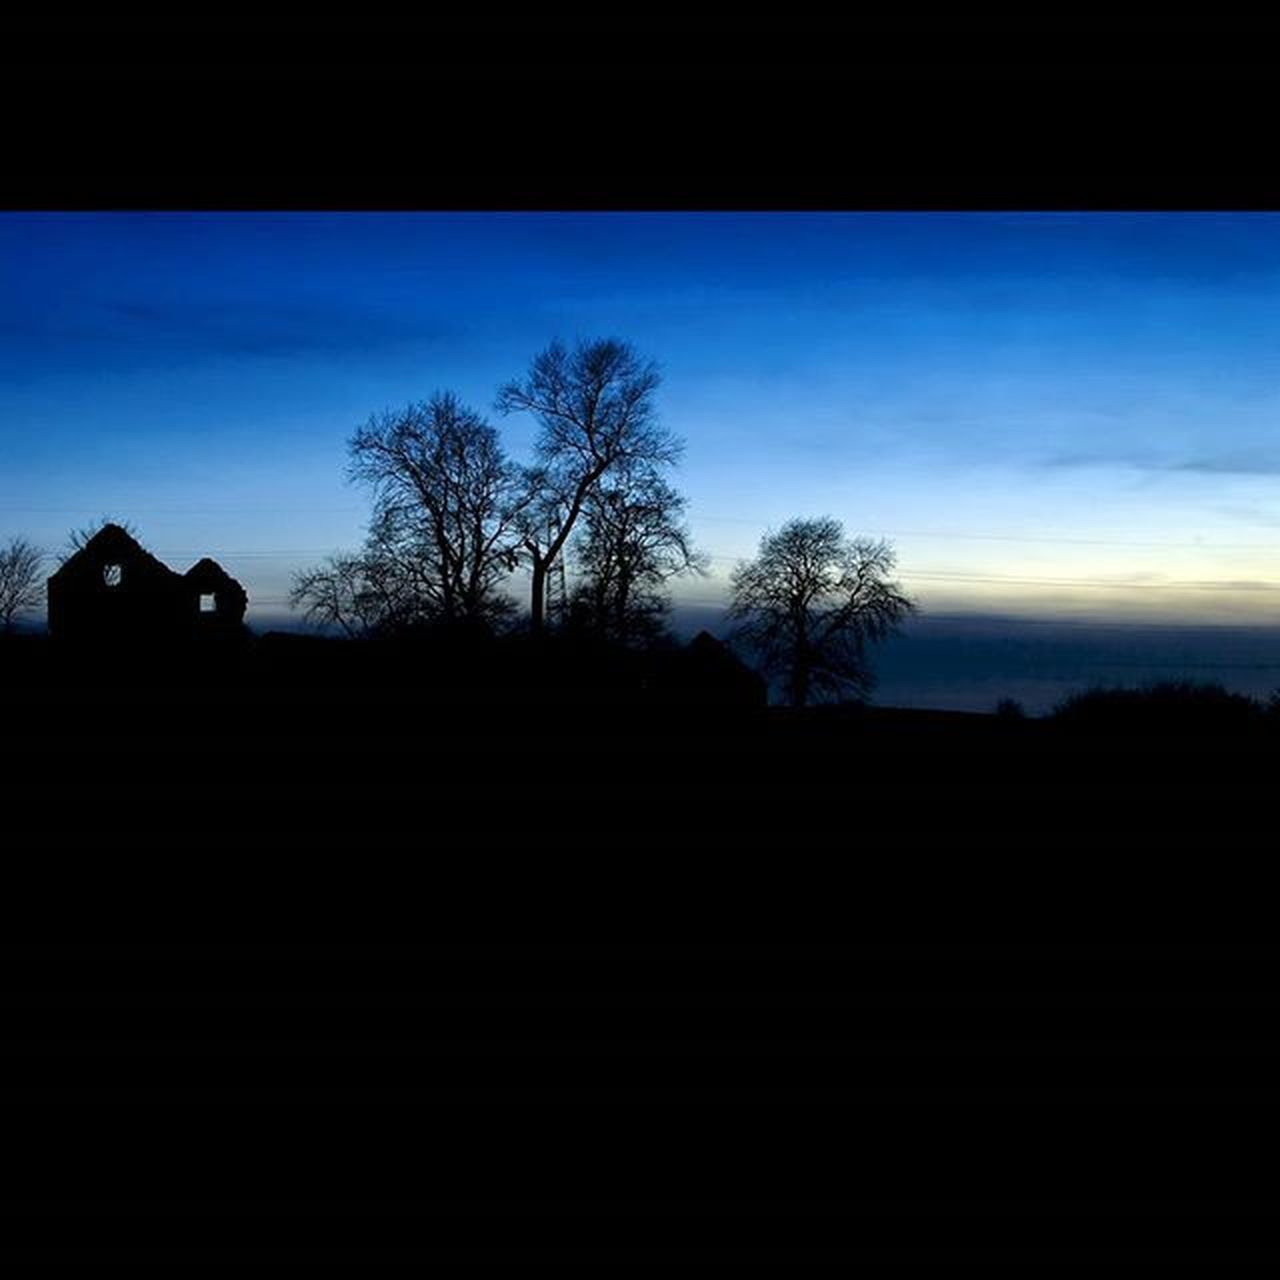 silhouette, tree, blue, sky, landscape, nature, outdoors, no people, scenics, bare tree, beauty in nature, day